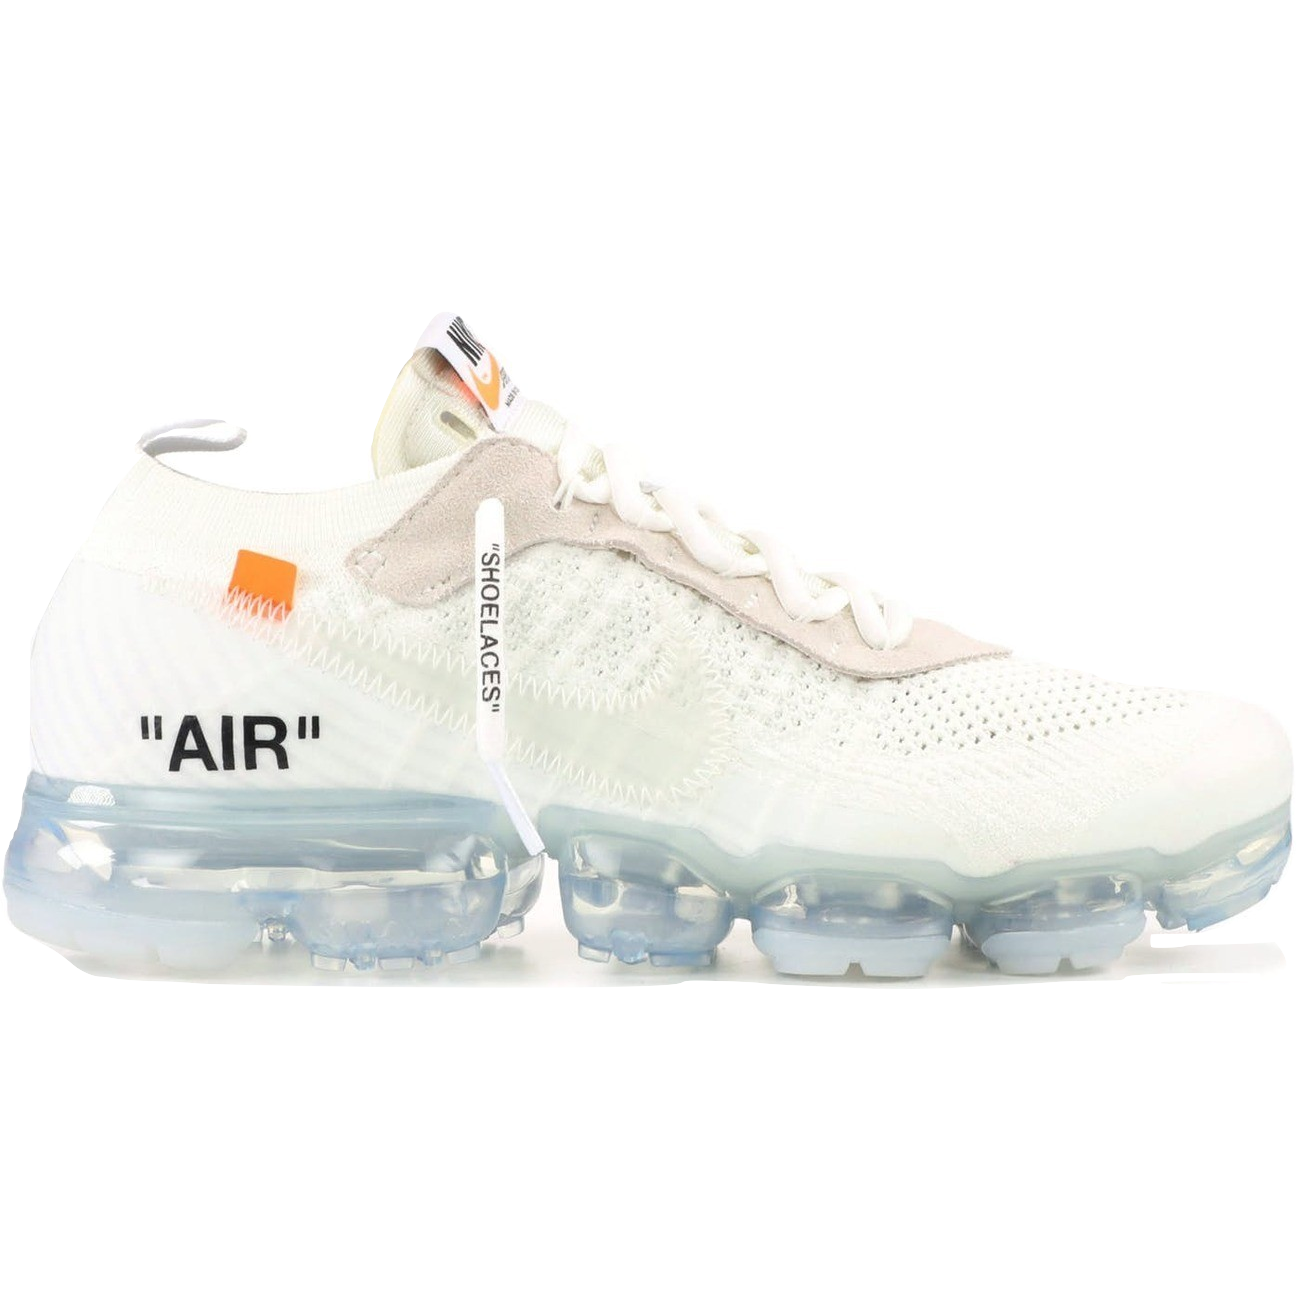 new arrival 5ae61 44c65 The 10  Nike Air Vapormax FK OFF WHITE - White